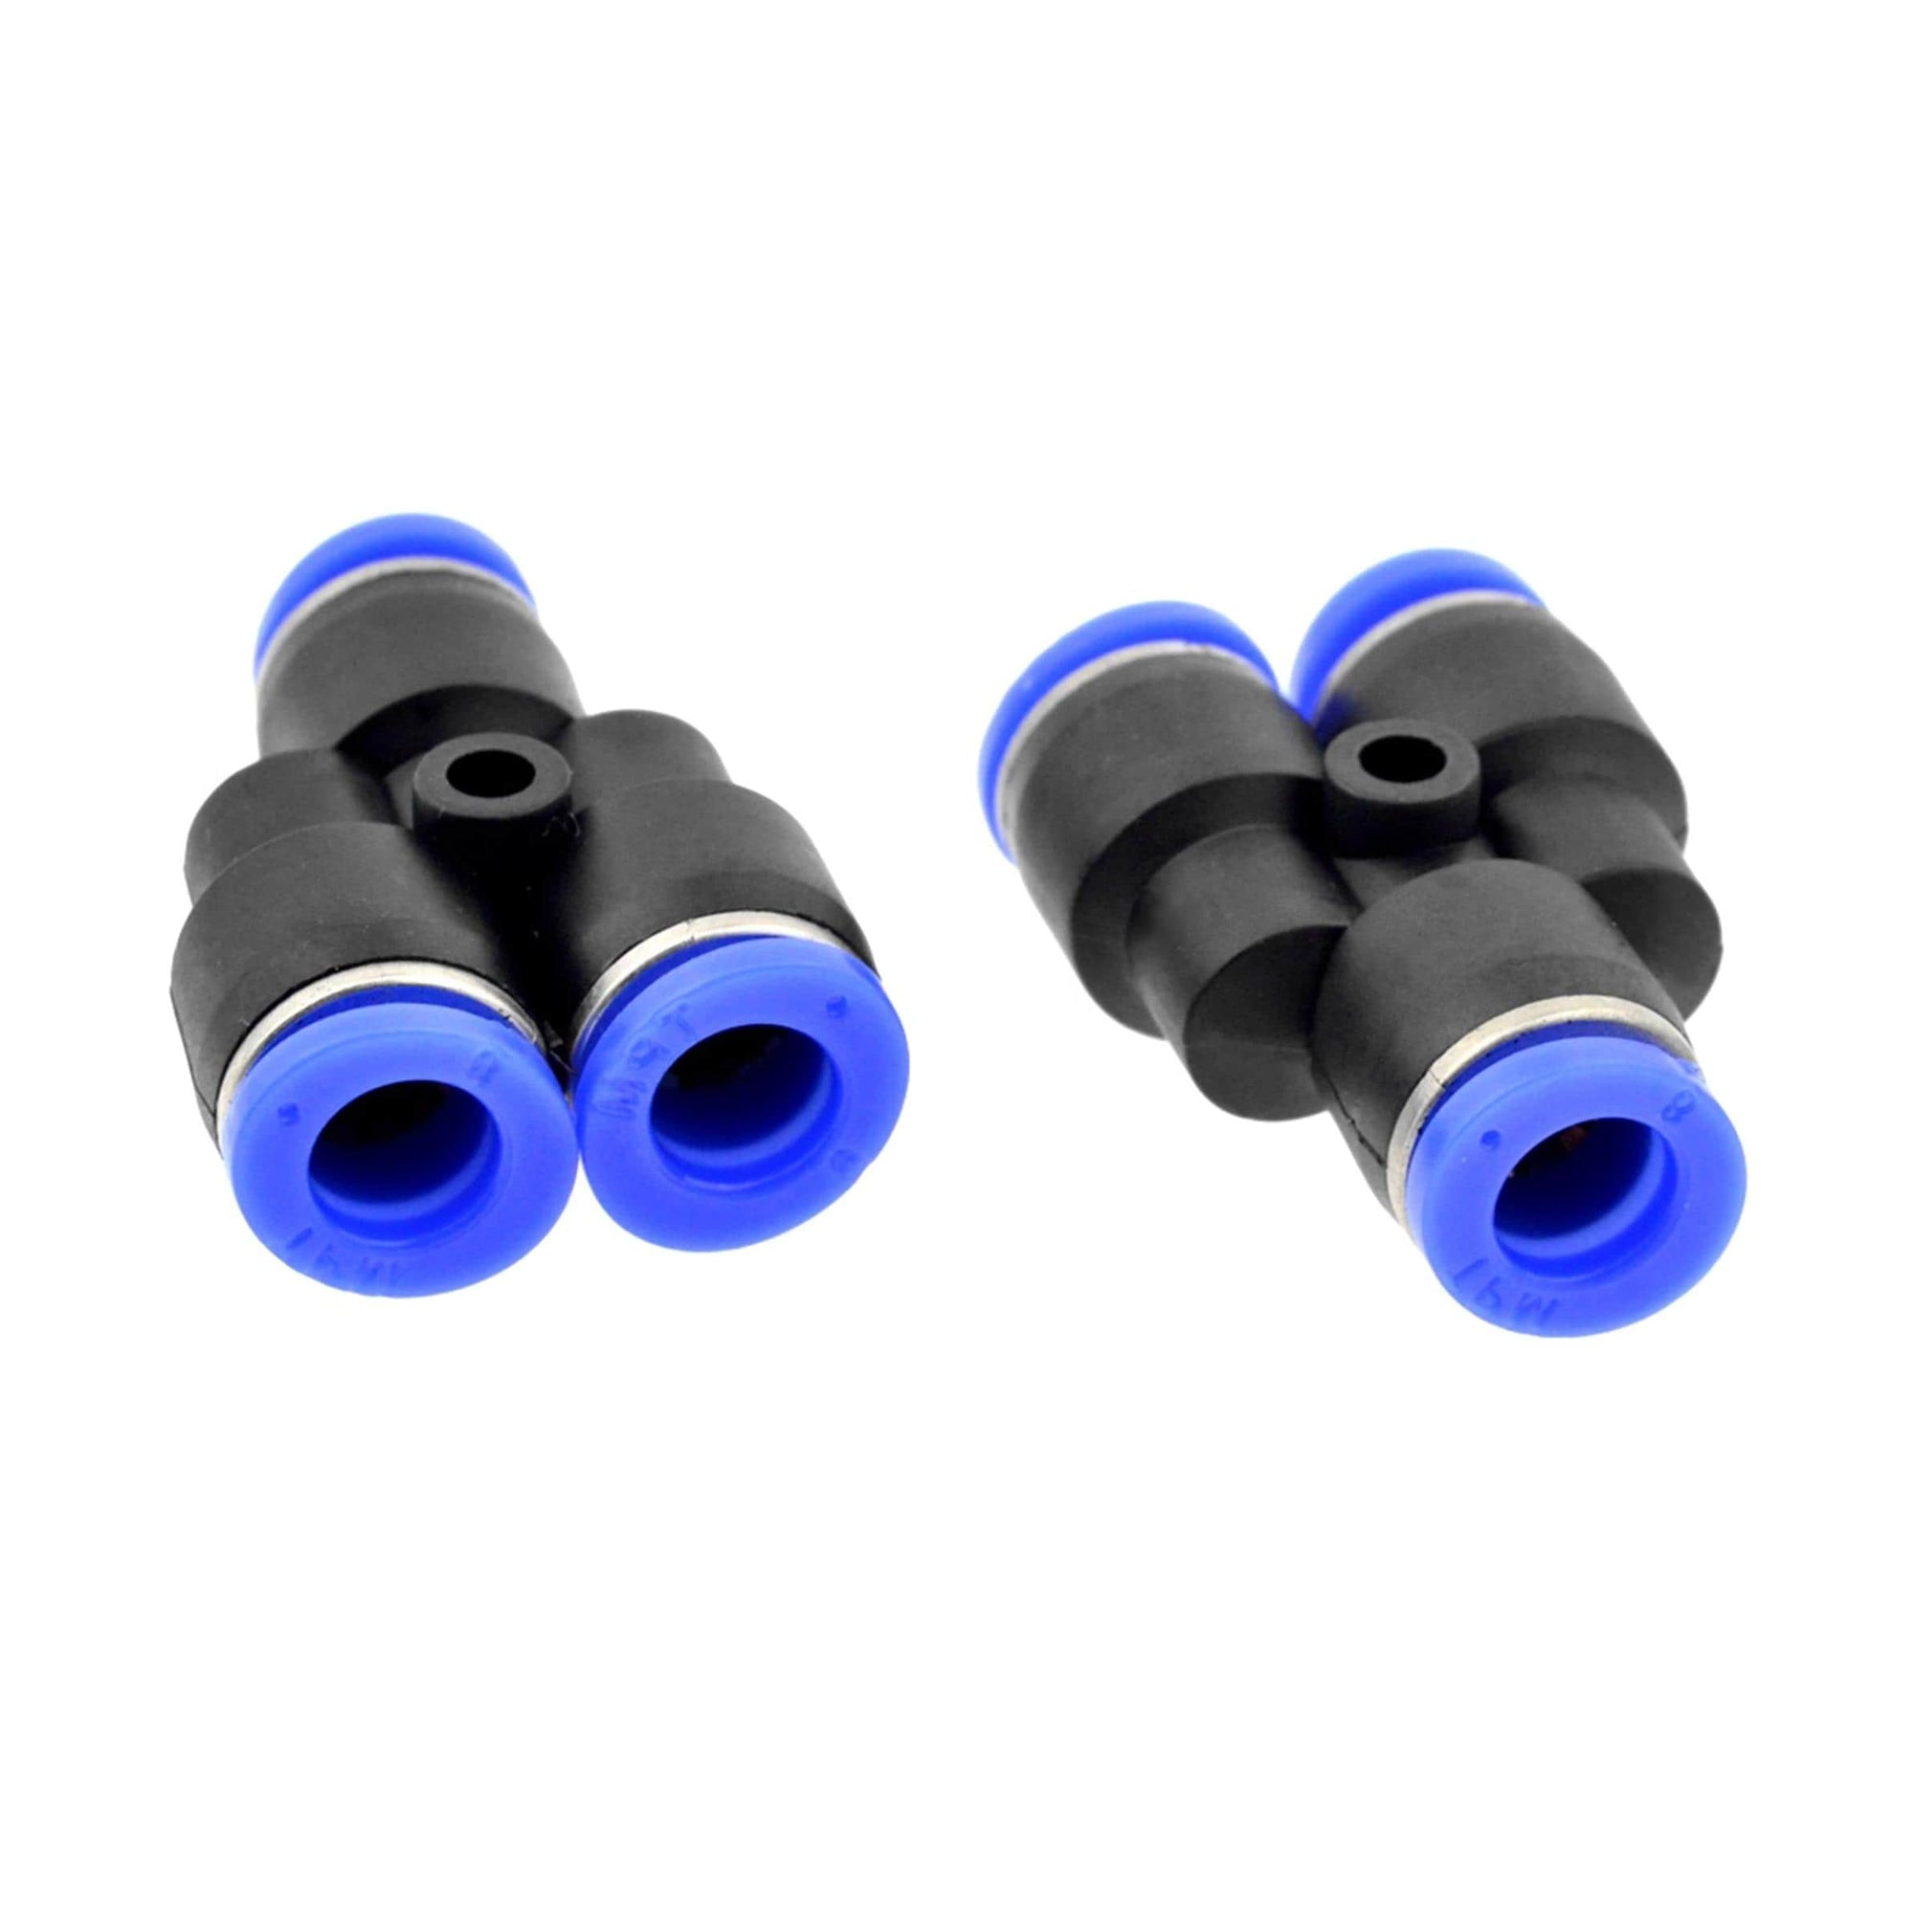 PUSH FIT Connectors Y-UNION - Window Cleaning Warehouse Ltd